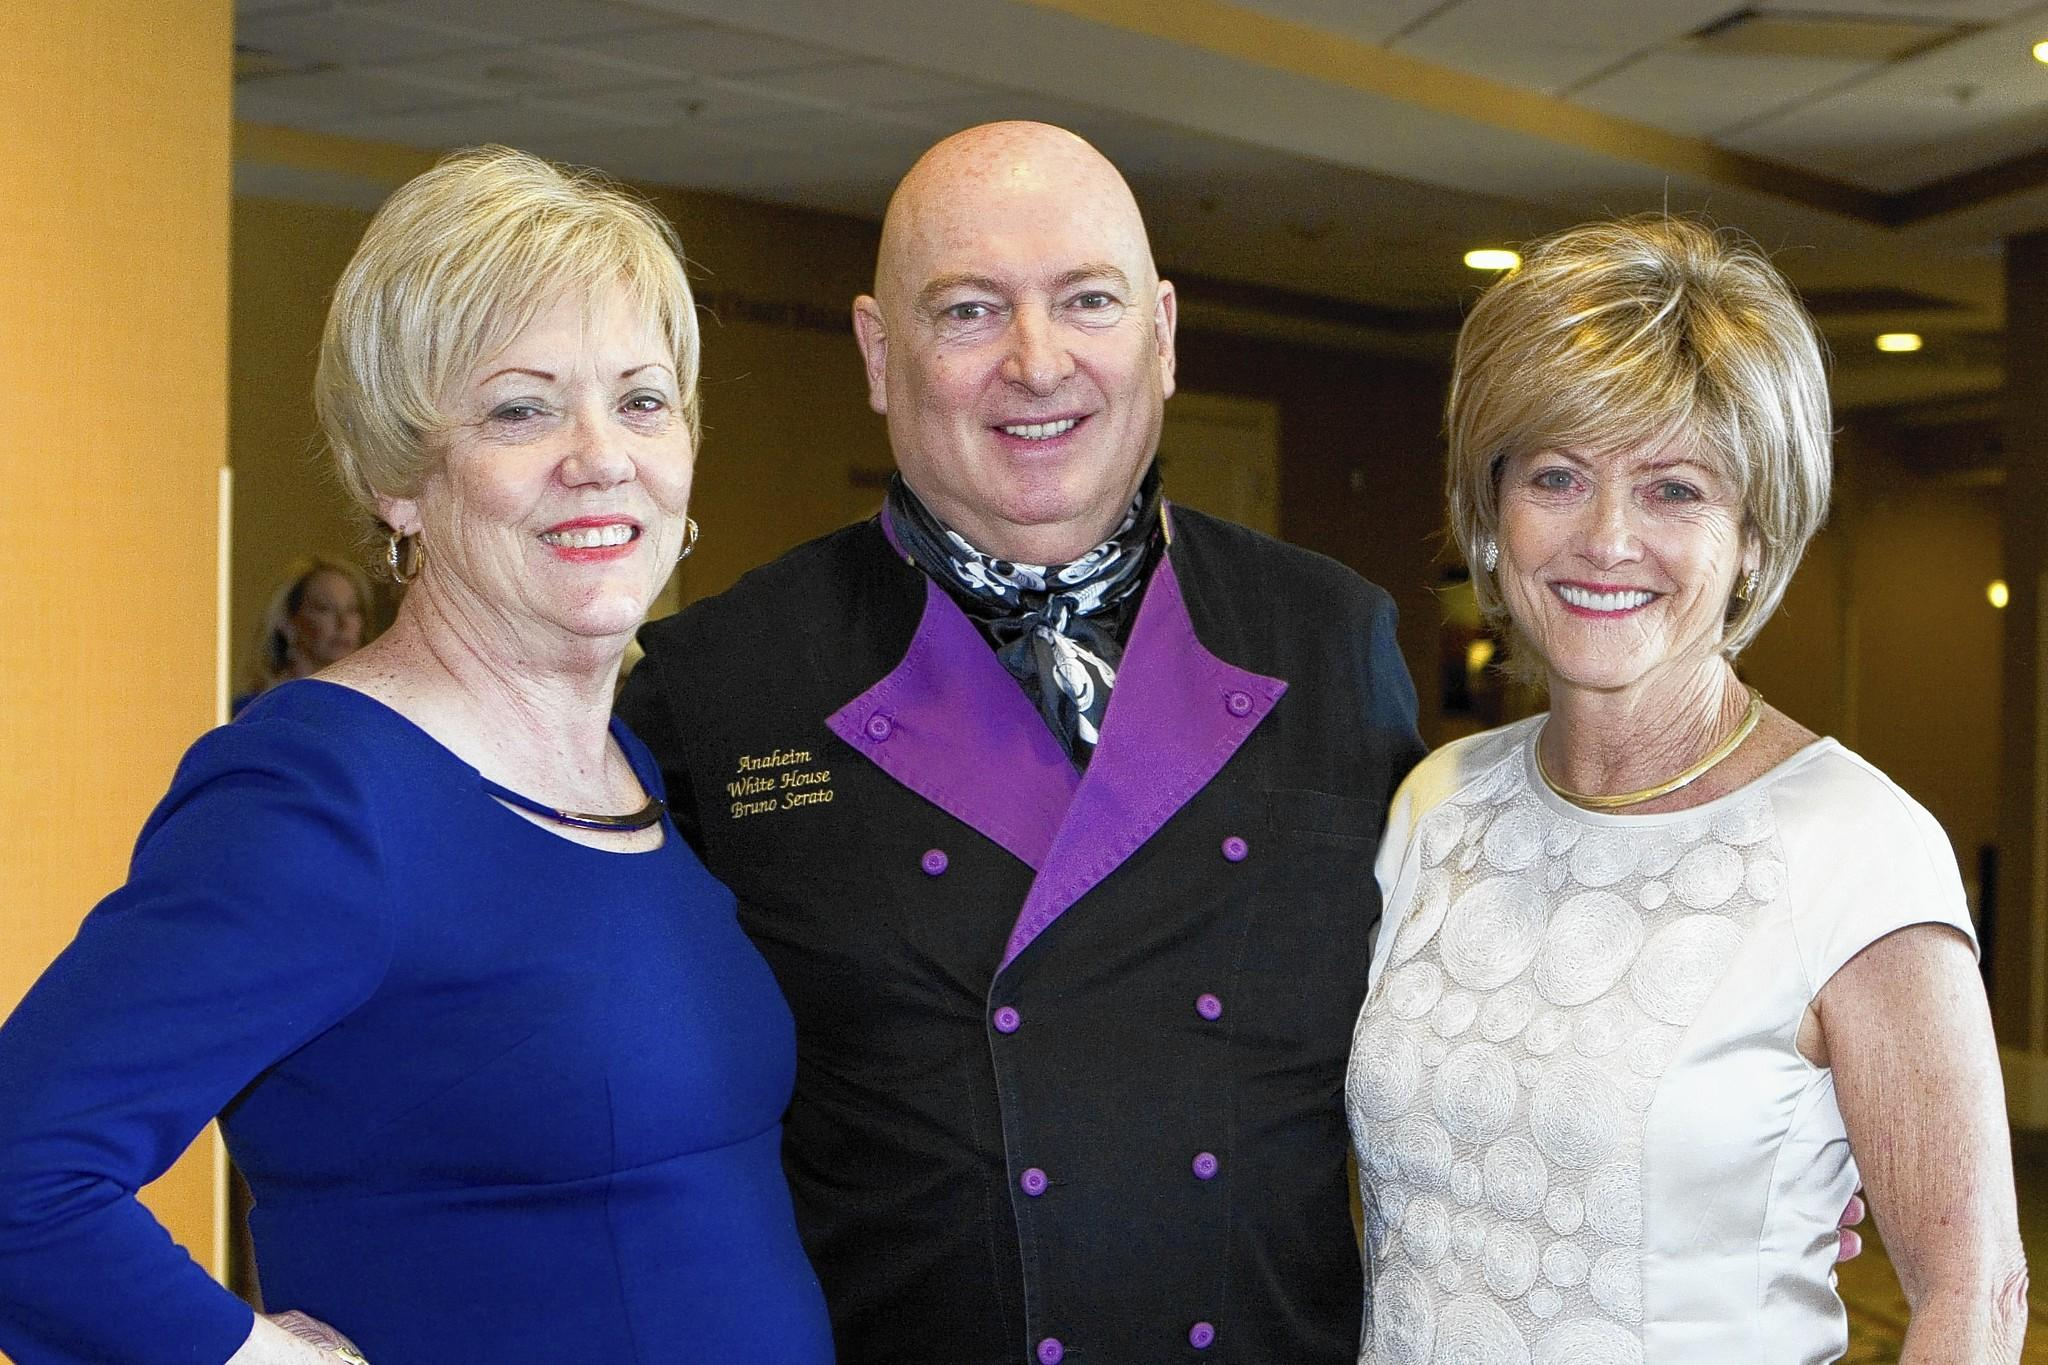 Childhelp devotee Dale San Filippo, Sir Bruno Serato, Children's Friend Award recipient, and Mary Allyn Dexter.